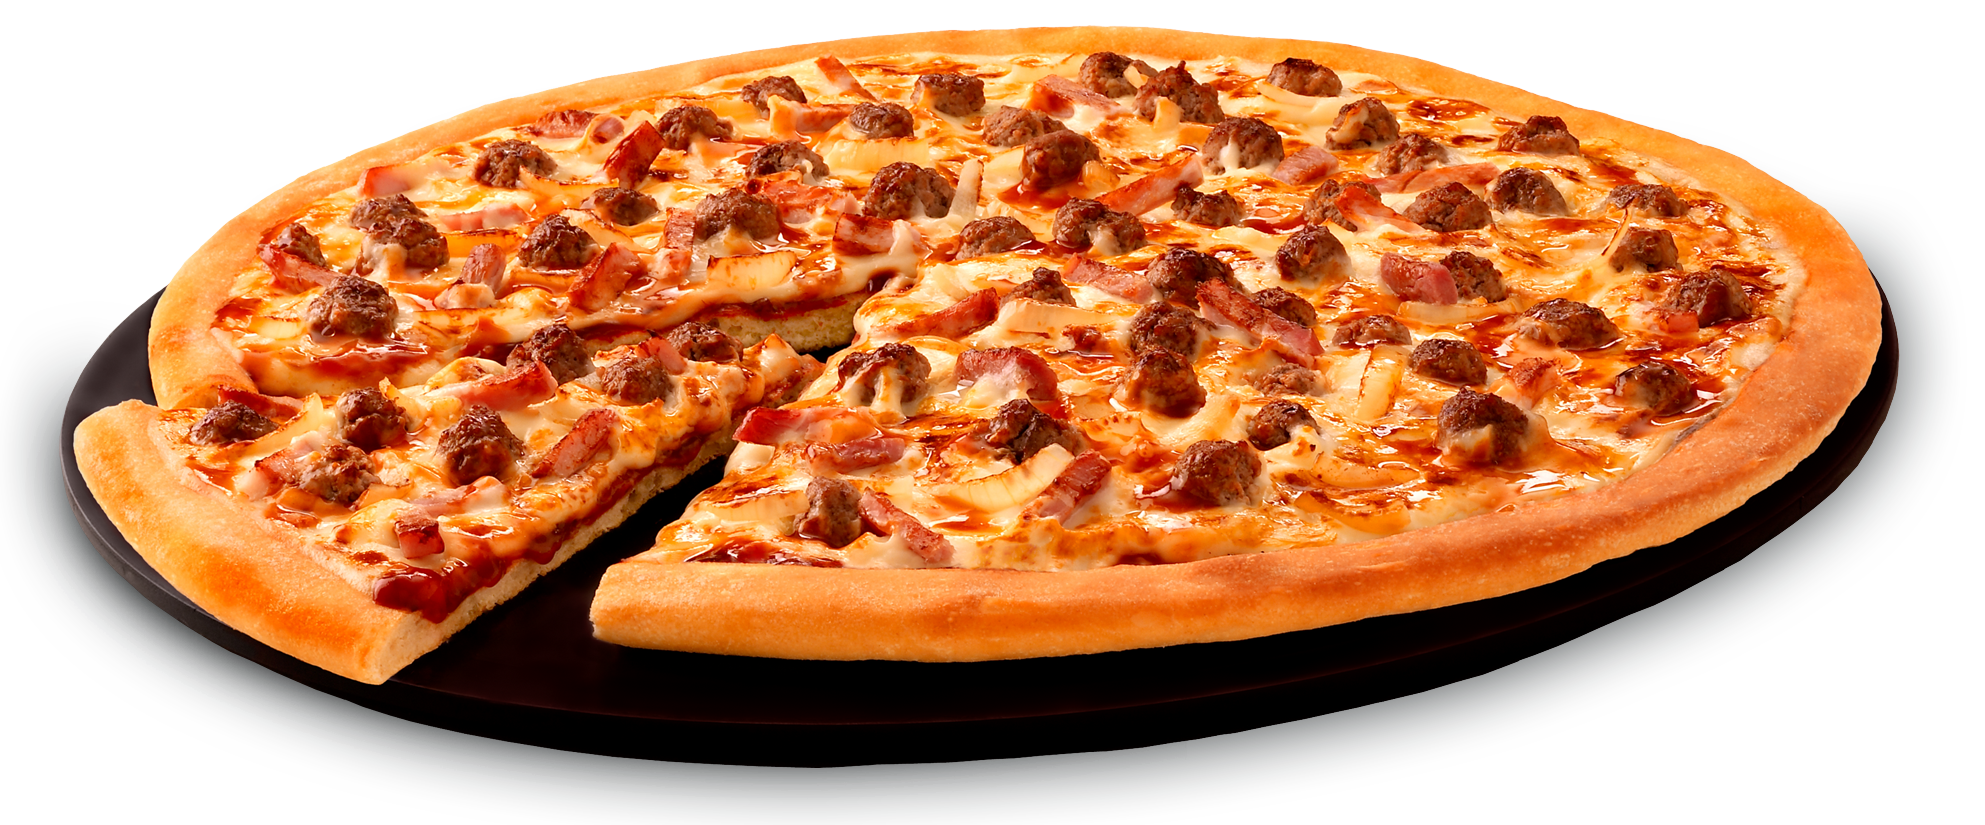 Pizza Images PNG, Pizza Slices - Free Transparent PNG Logos